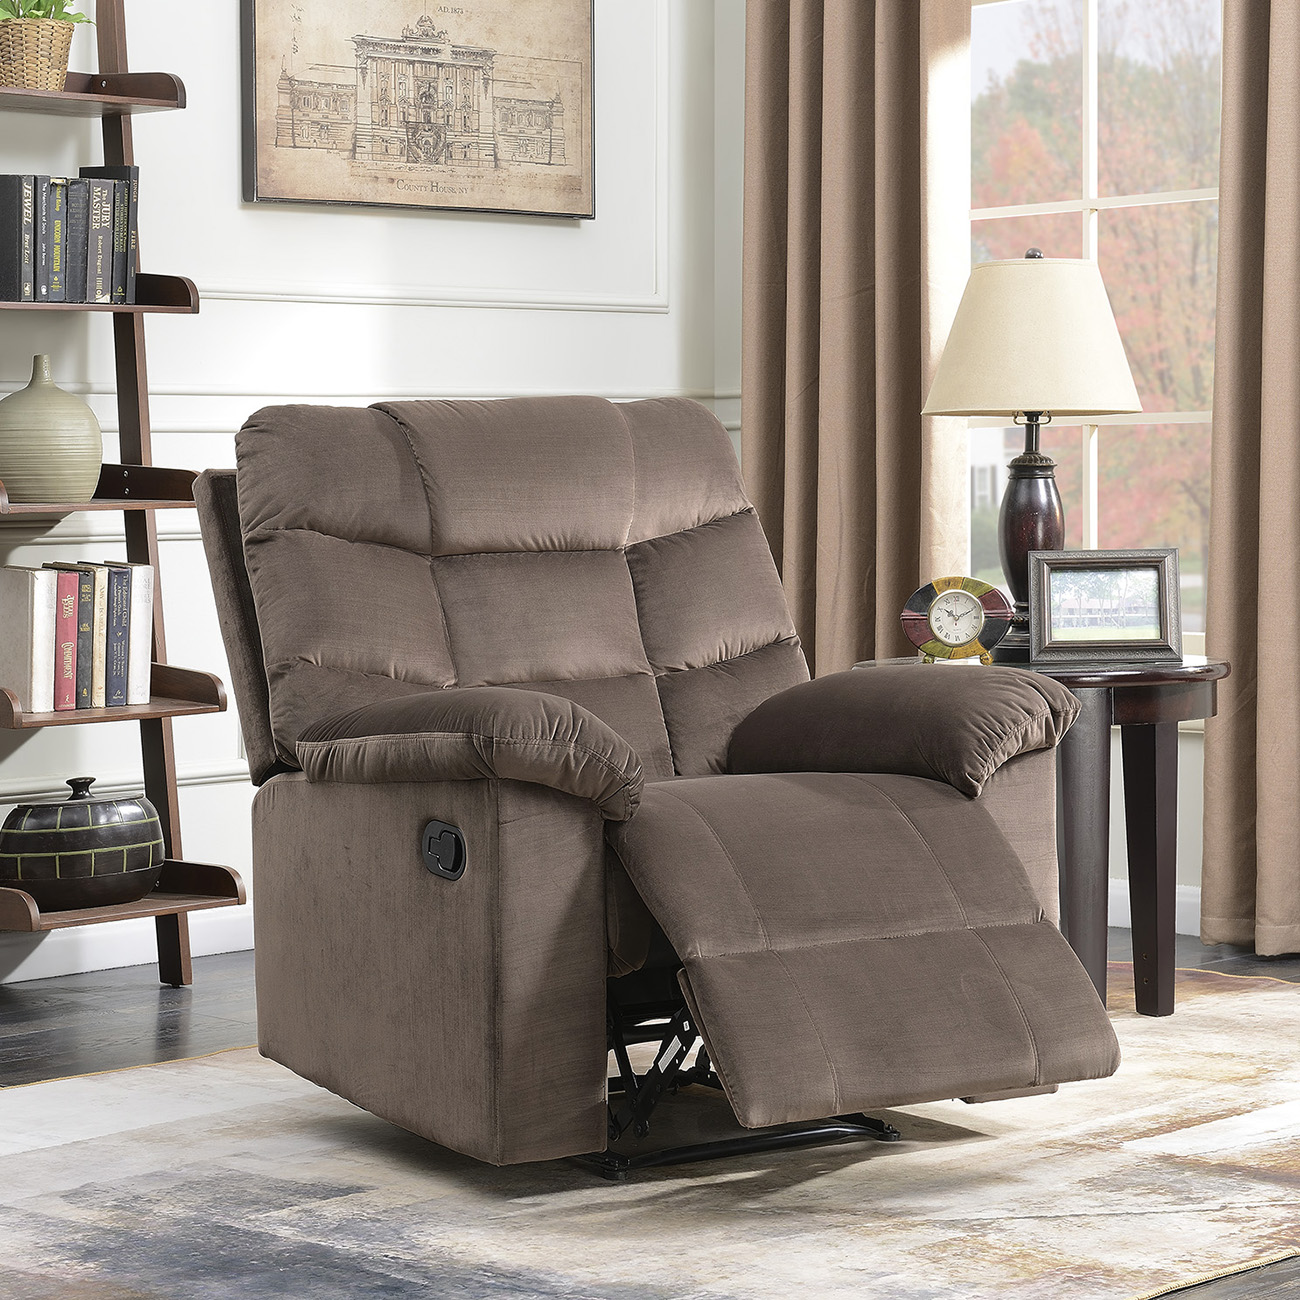 Belleze Microfiber Contemporary Full Recliner Lounger High Back Extra Padded Overstuffed Armrest Backrest Chair, Brown